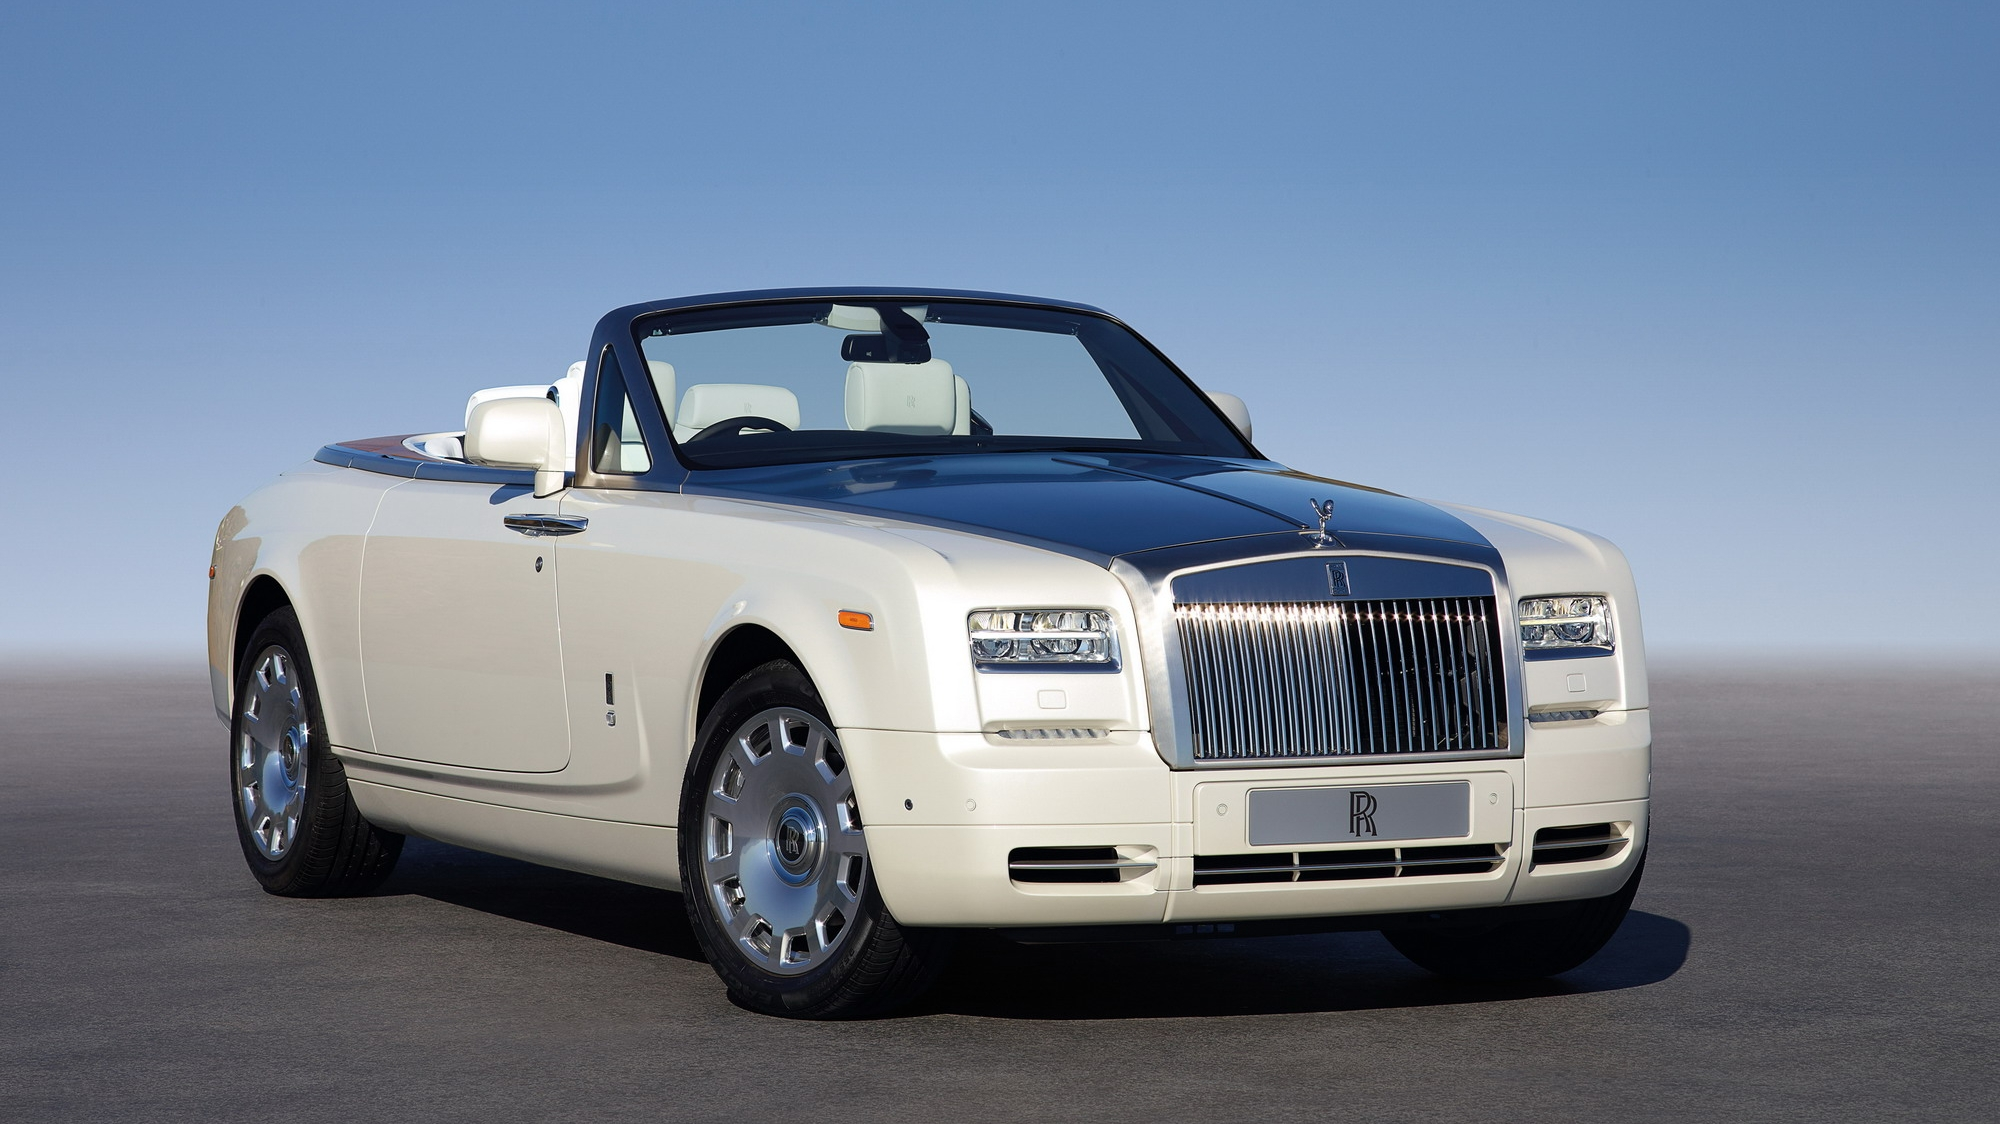 83 The 2020 Rolls Royce Phantoms Exterior and Interior